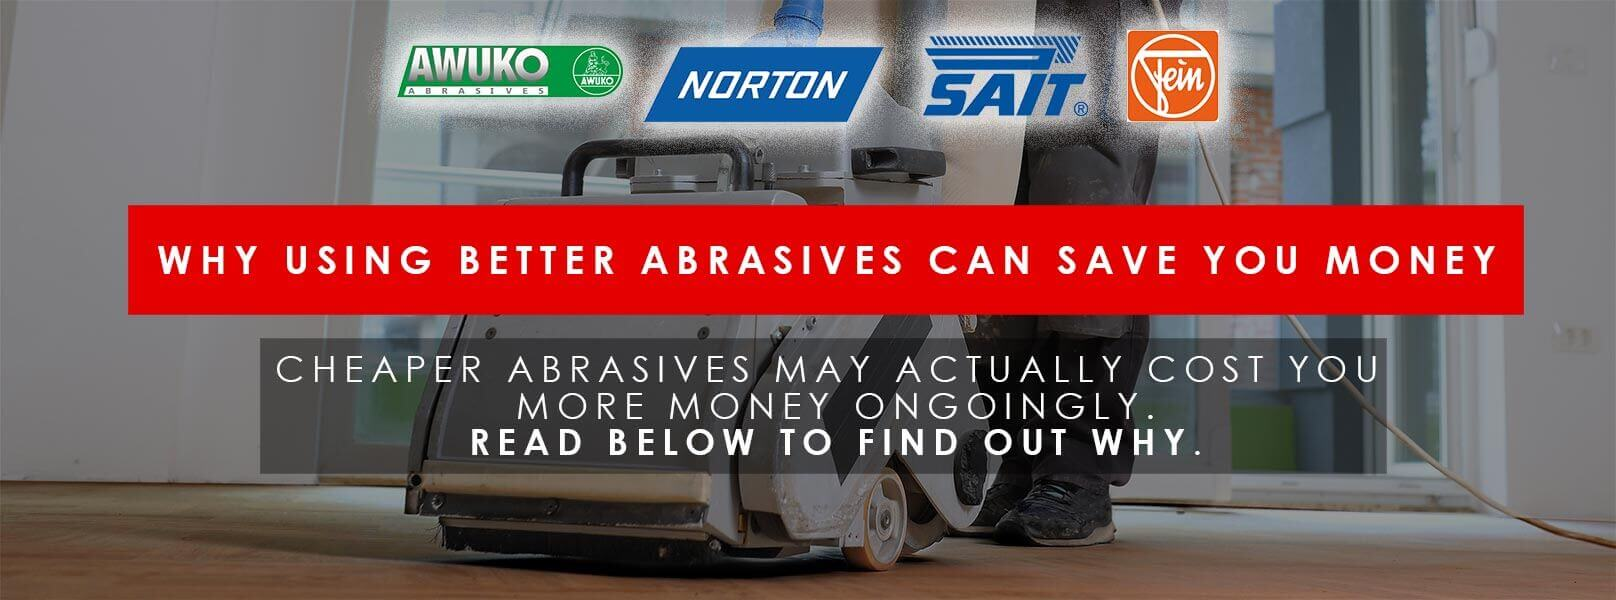 Floor Sanding - Why Using Better Abrasives Can Save You Money